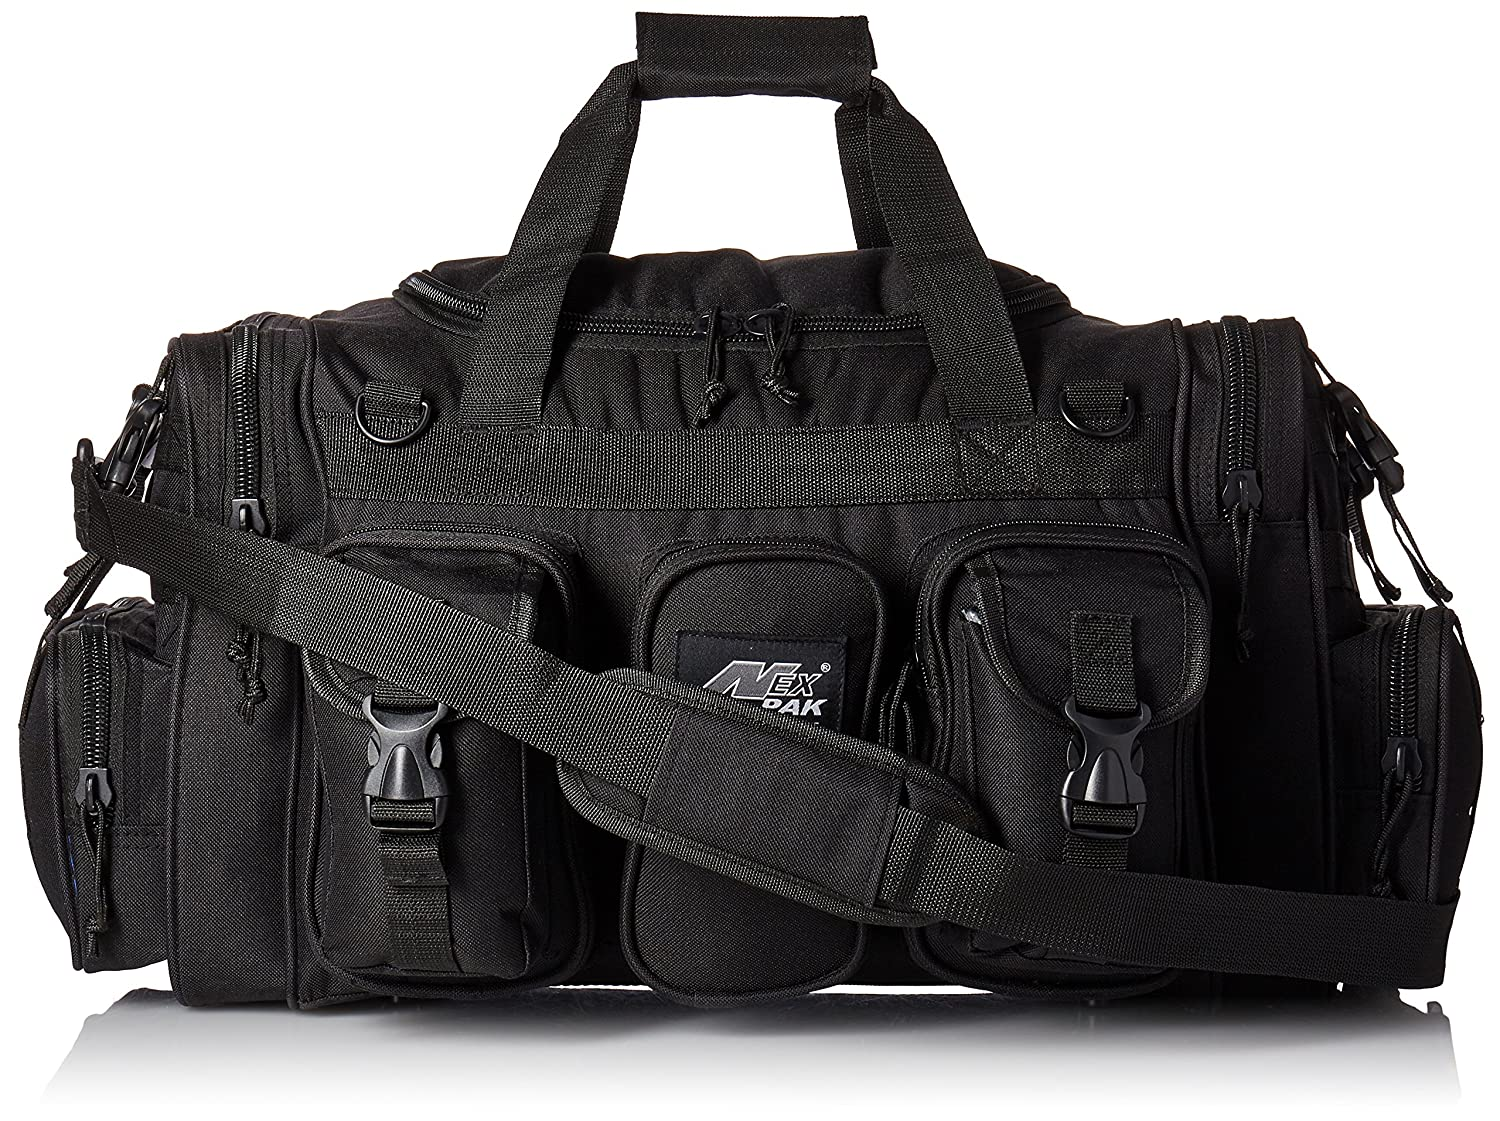 NEXPAK 55,9 cm 2600 Raptor Tactical Duffle Range Bag TF122 schwarz